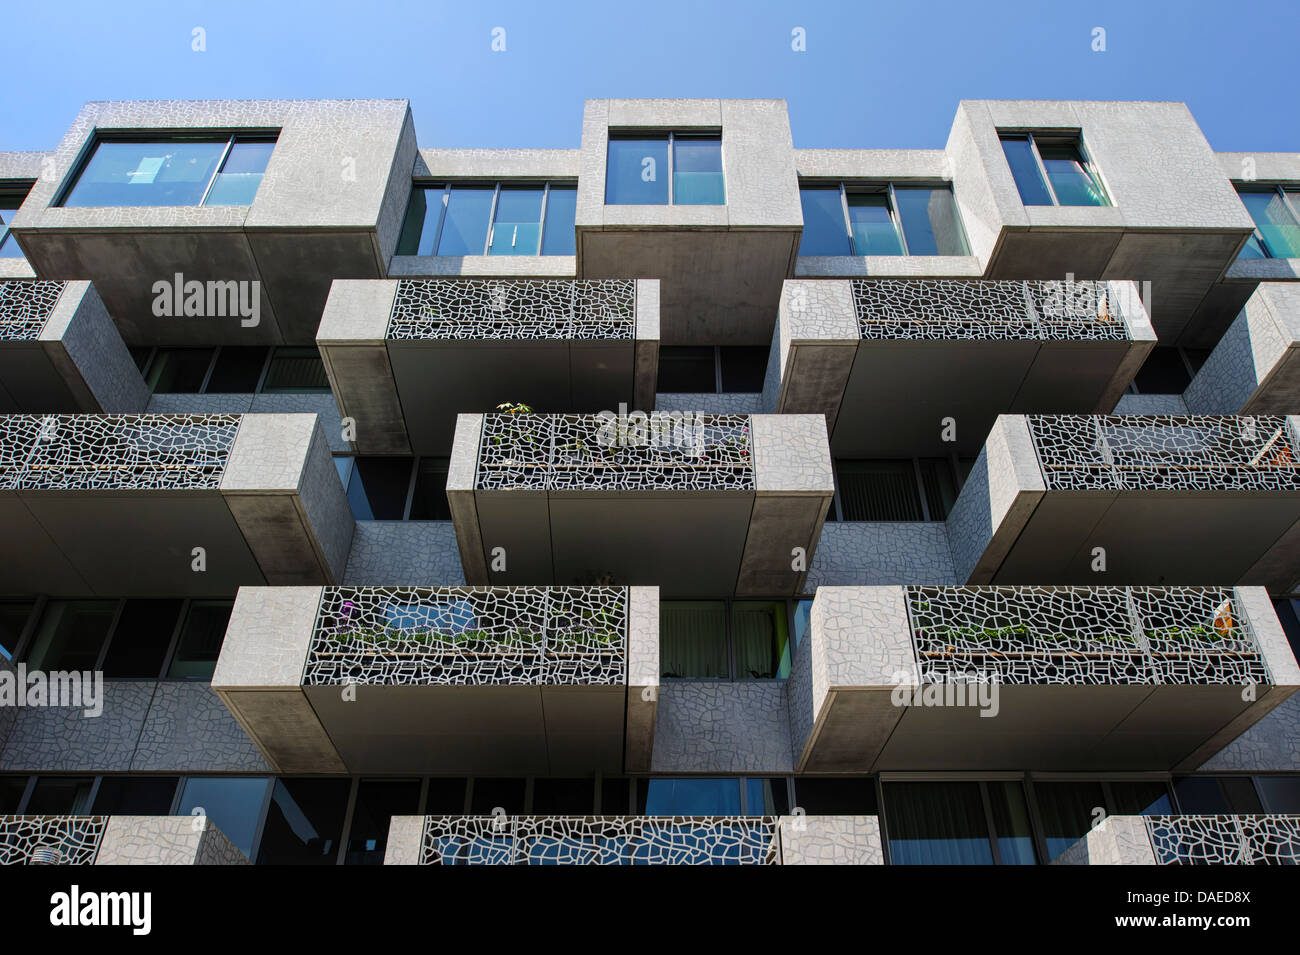 Modern flats with balconies of block of apartments in Leuven / Louvain, Belgium - Stock Image